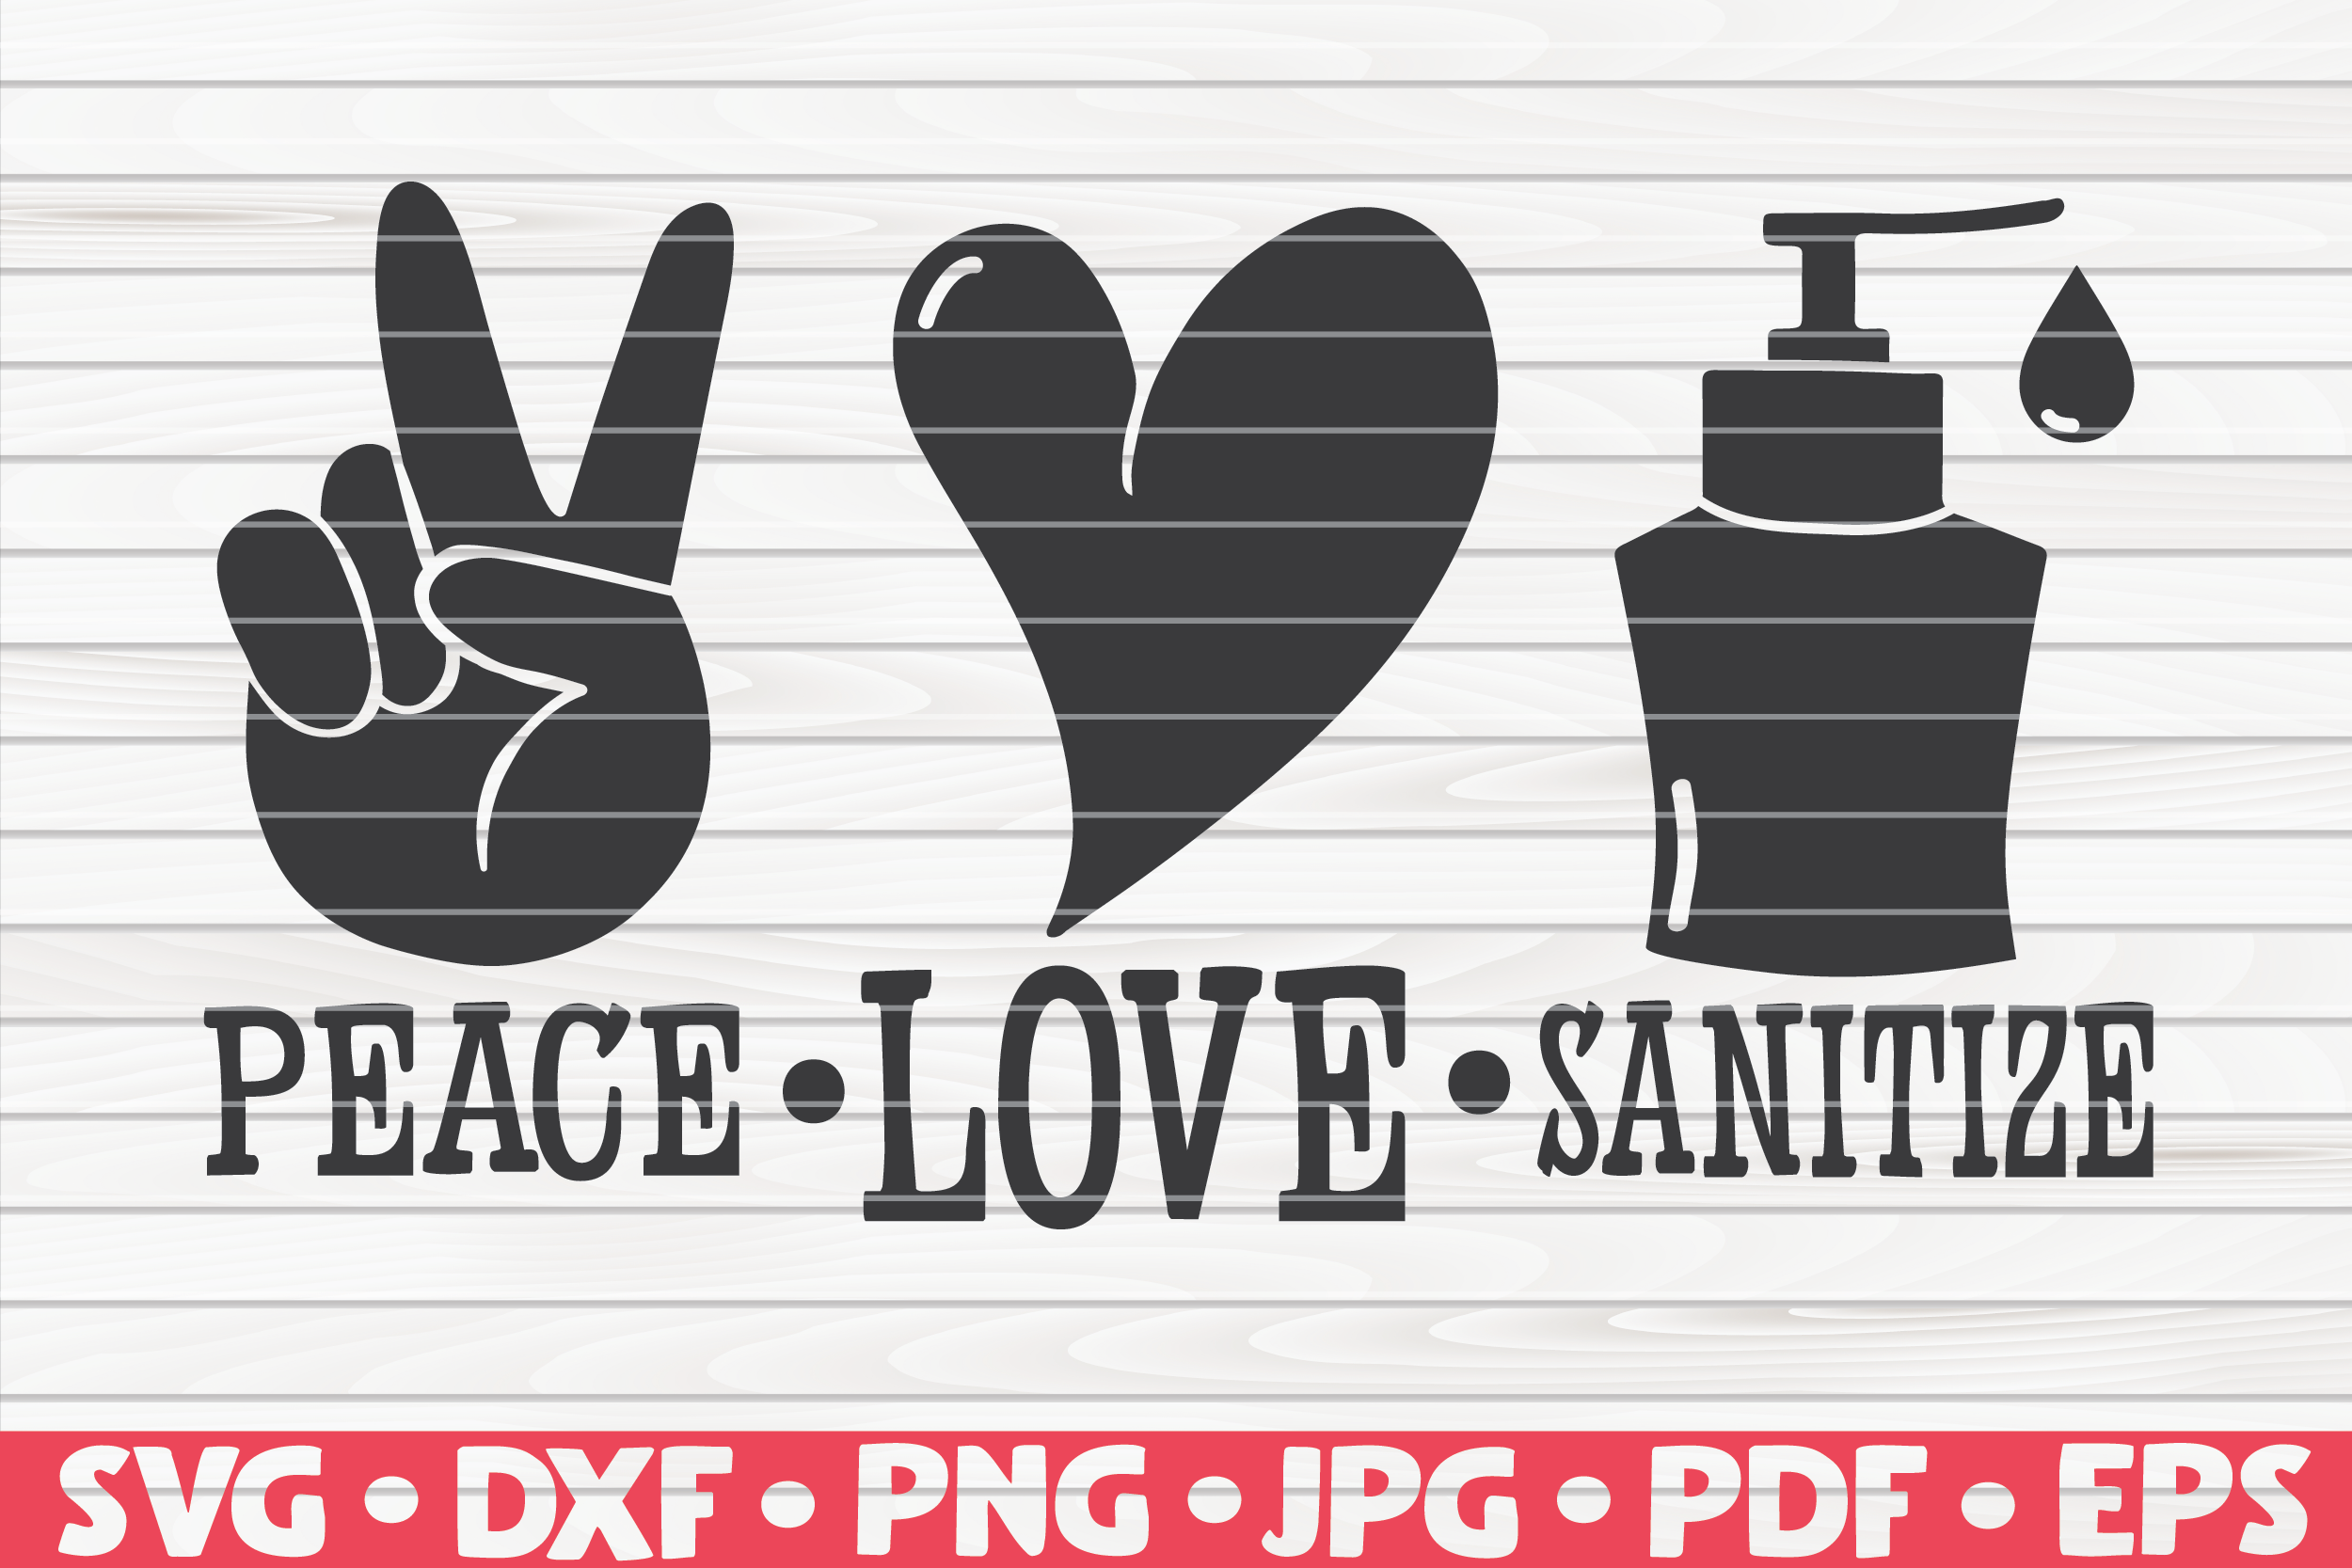 Download Free Peace Love Sanitize Graphic By Mihaibadea95 Creative Fabrica SVG Cut Files